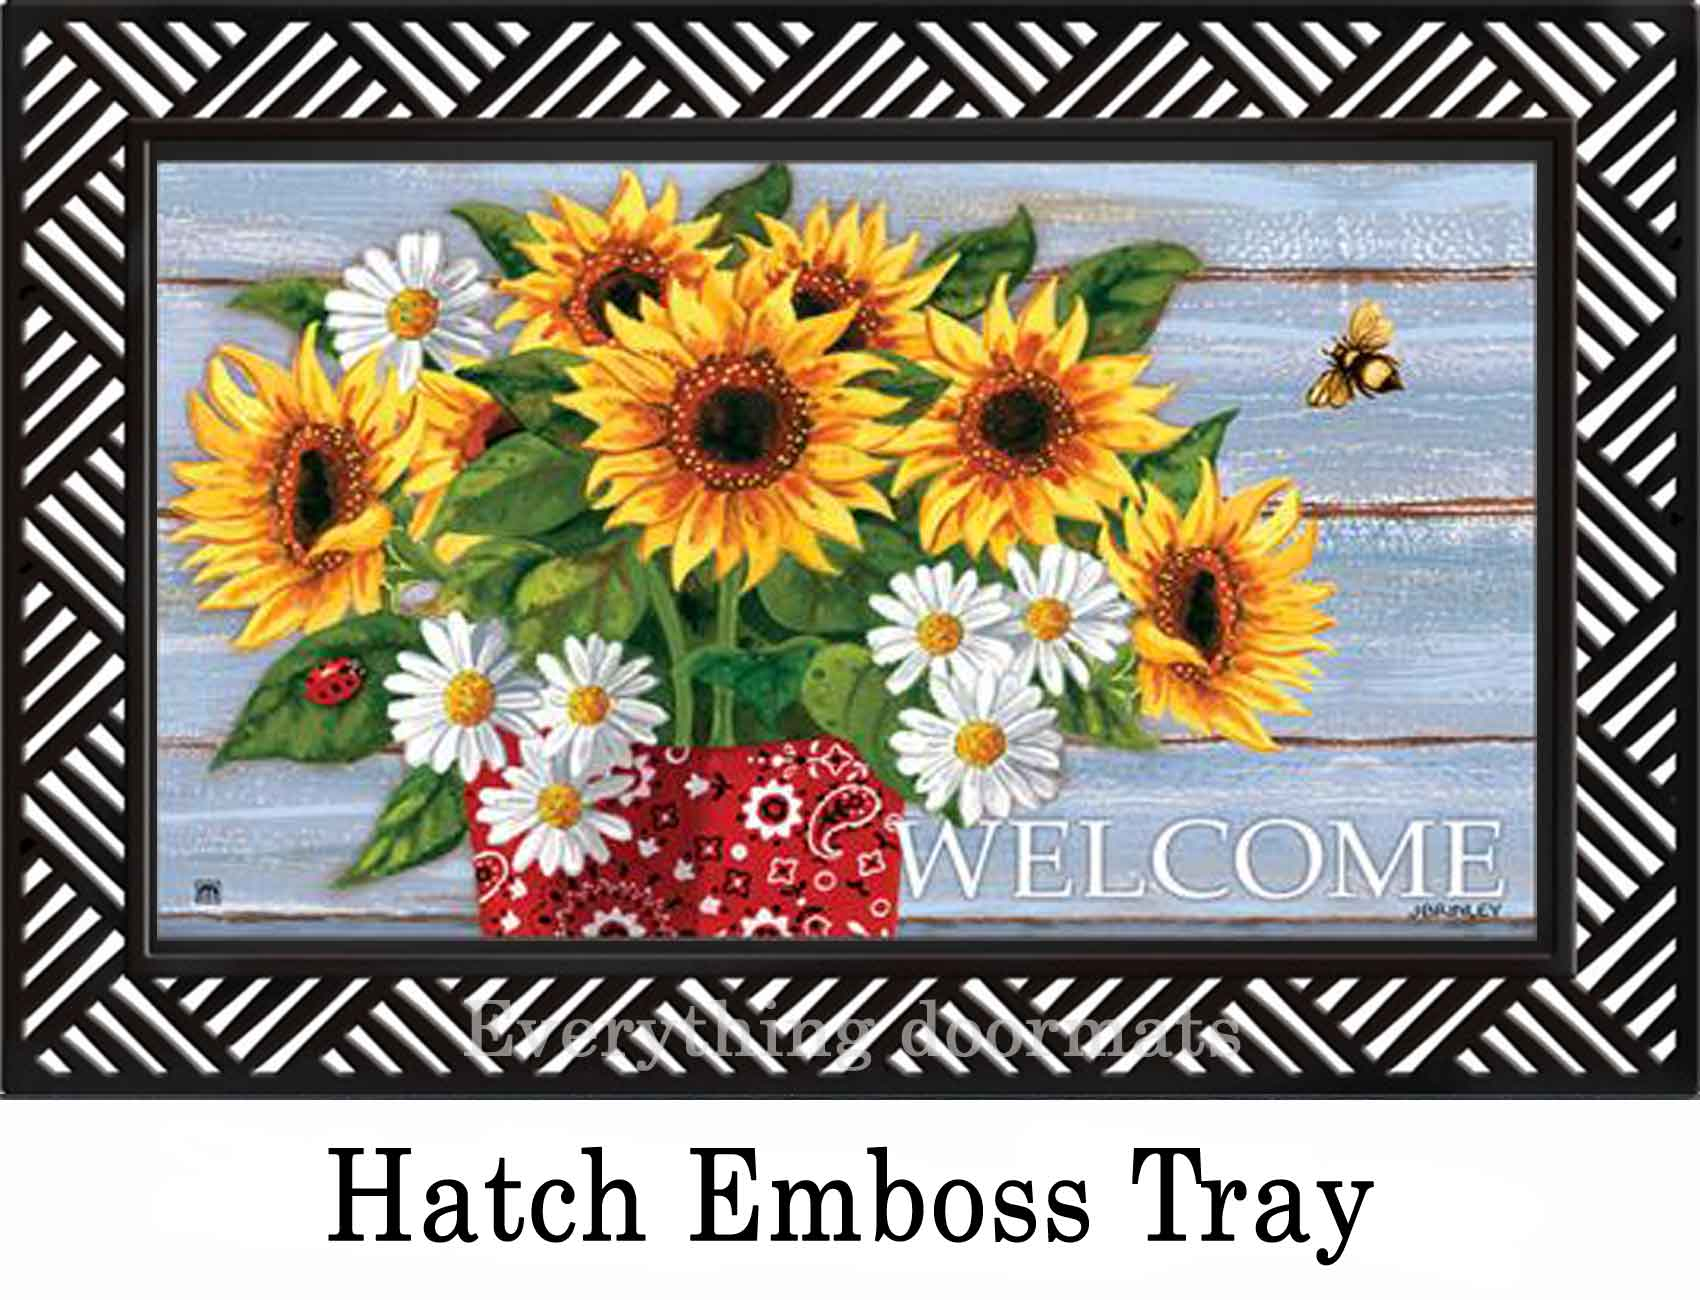 Indoor Amp Outdoor Bandana Sunflowers Matmates Doormat